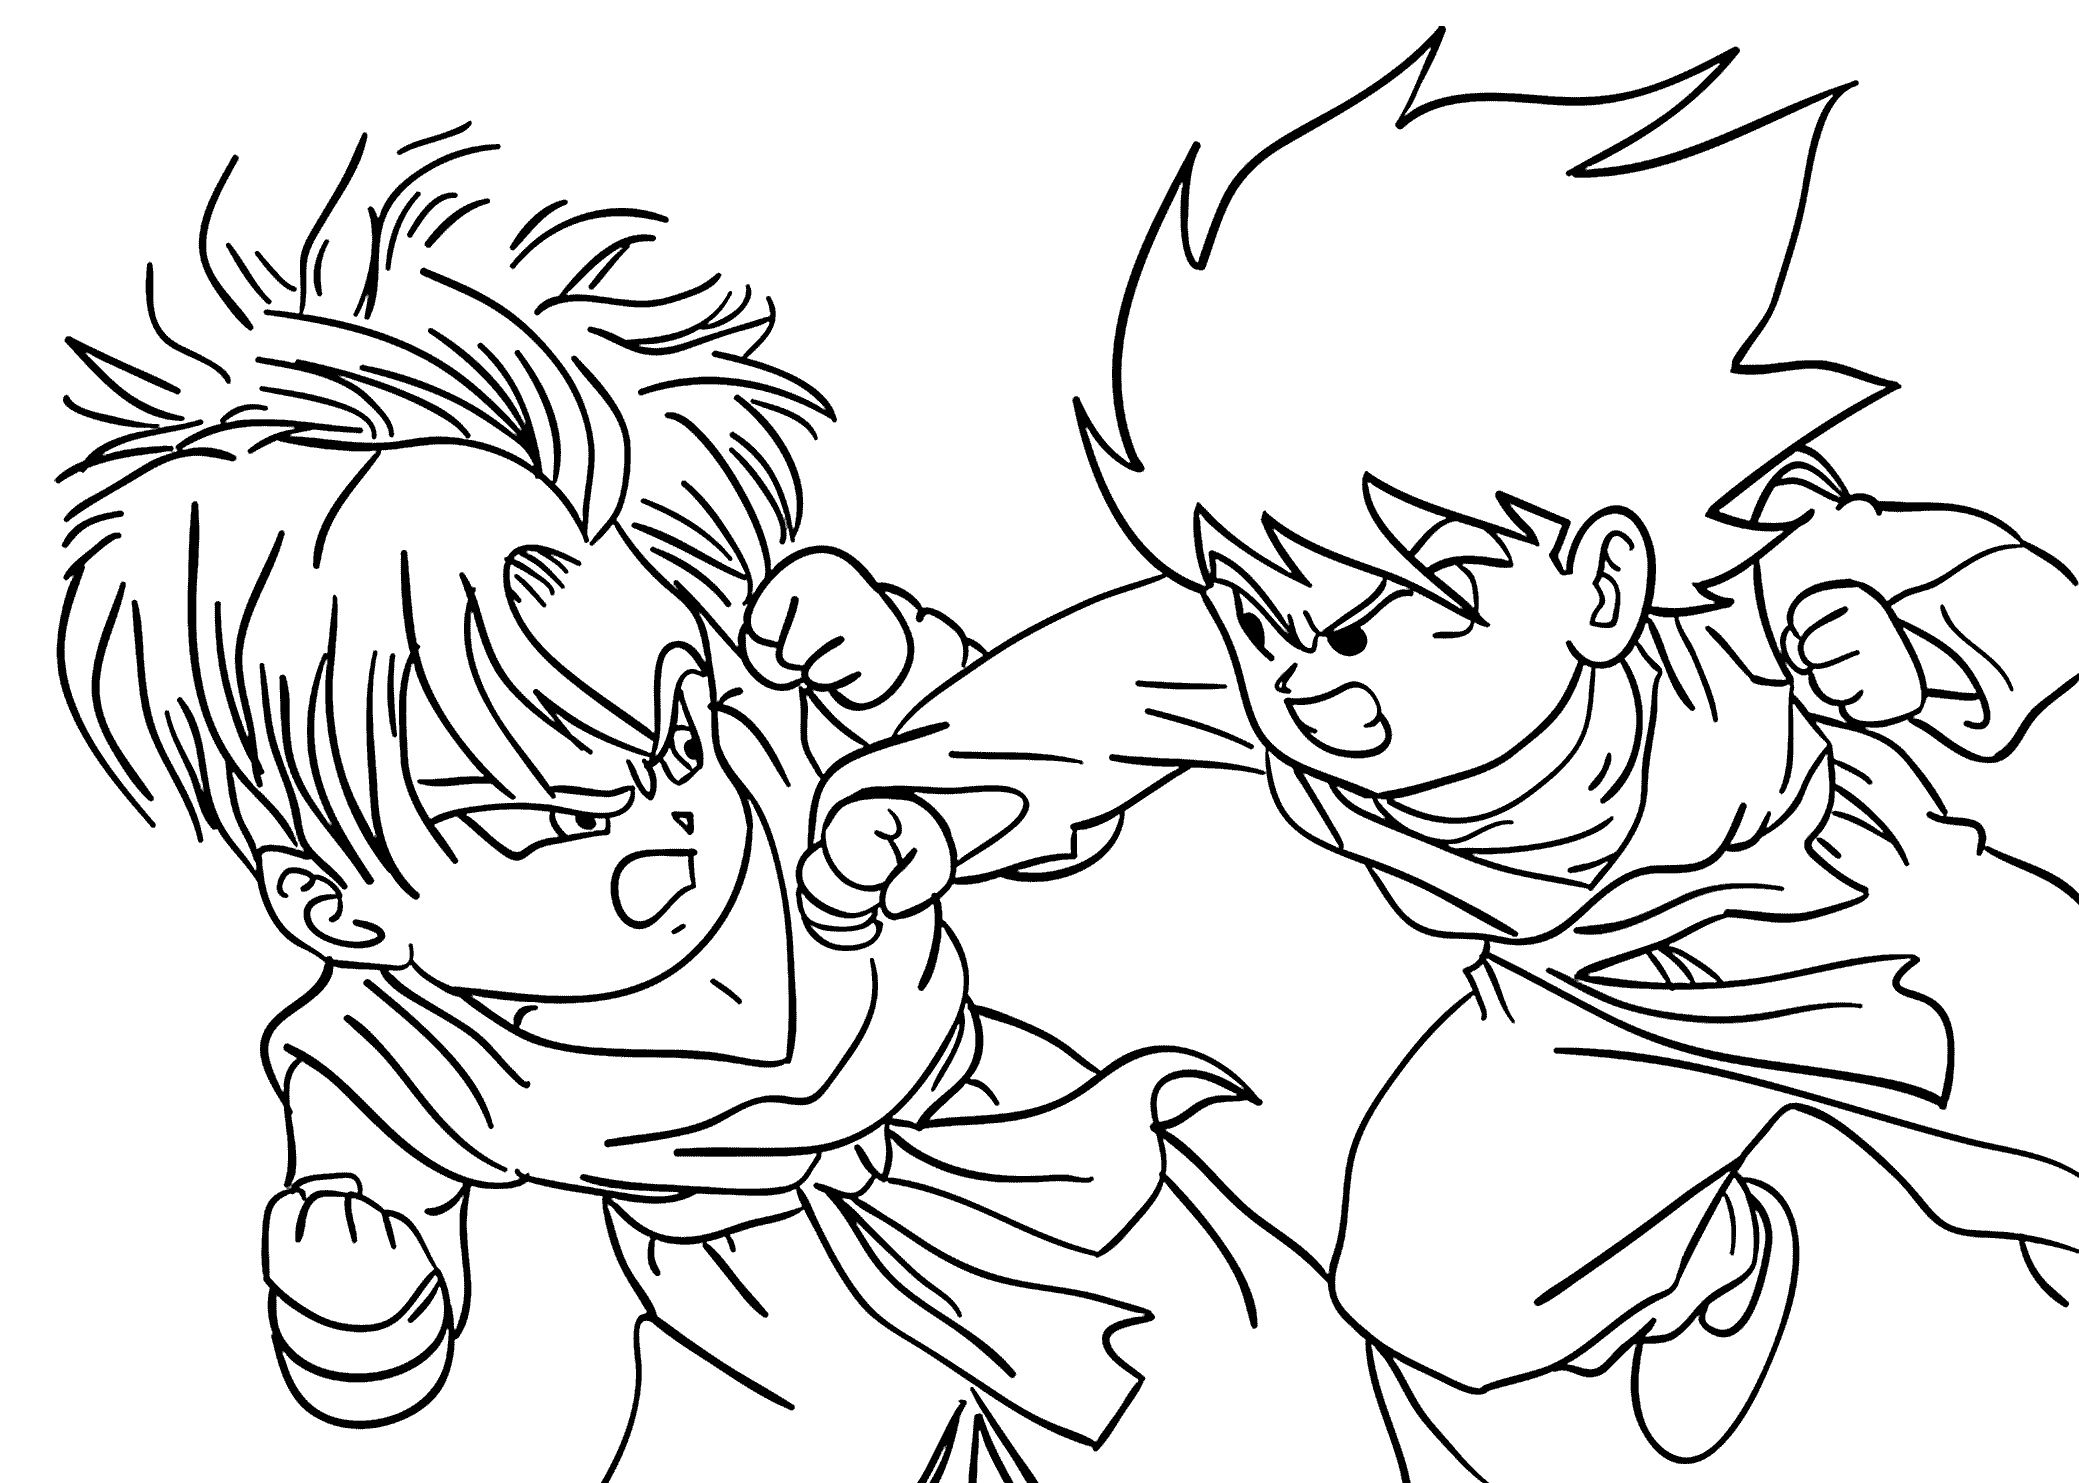 Dragon Ball Z Coloring Games (With images) Super